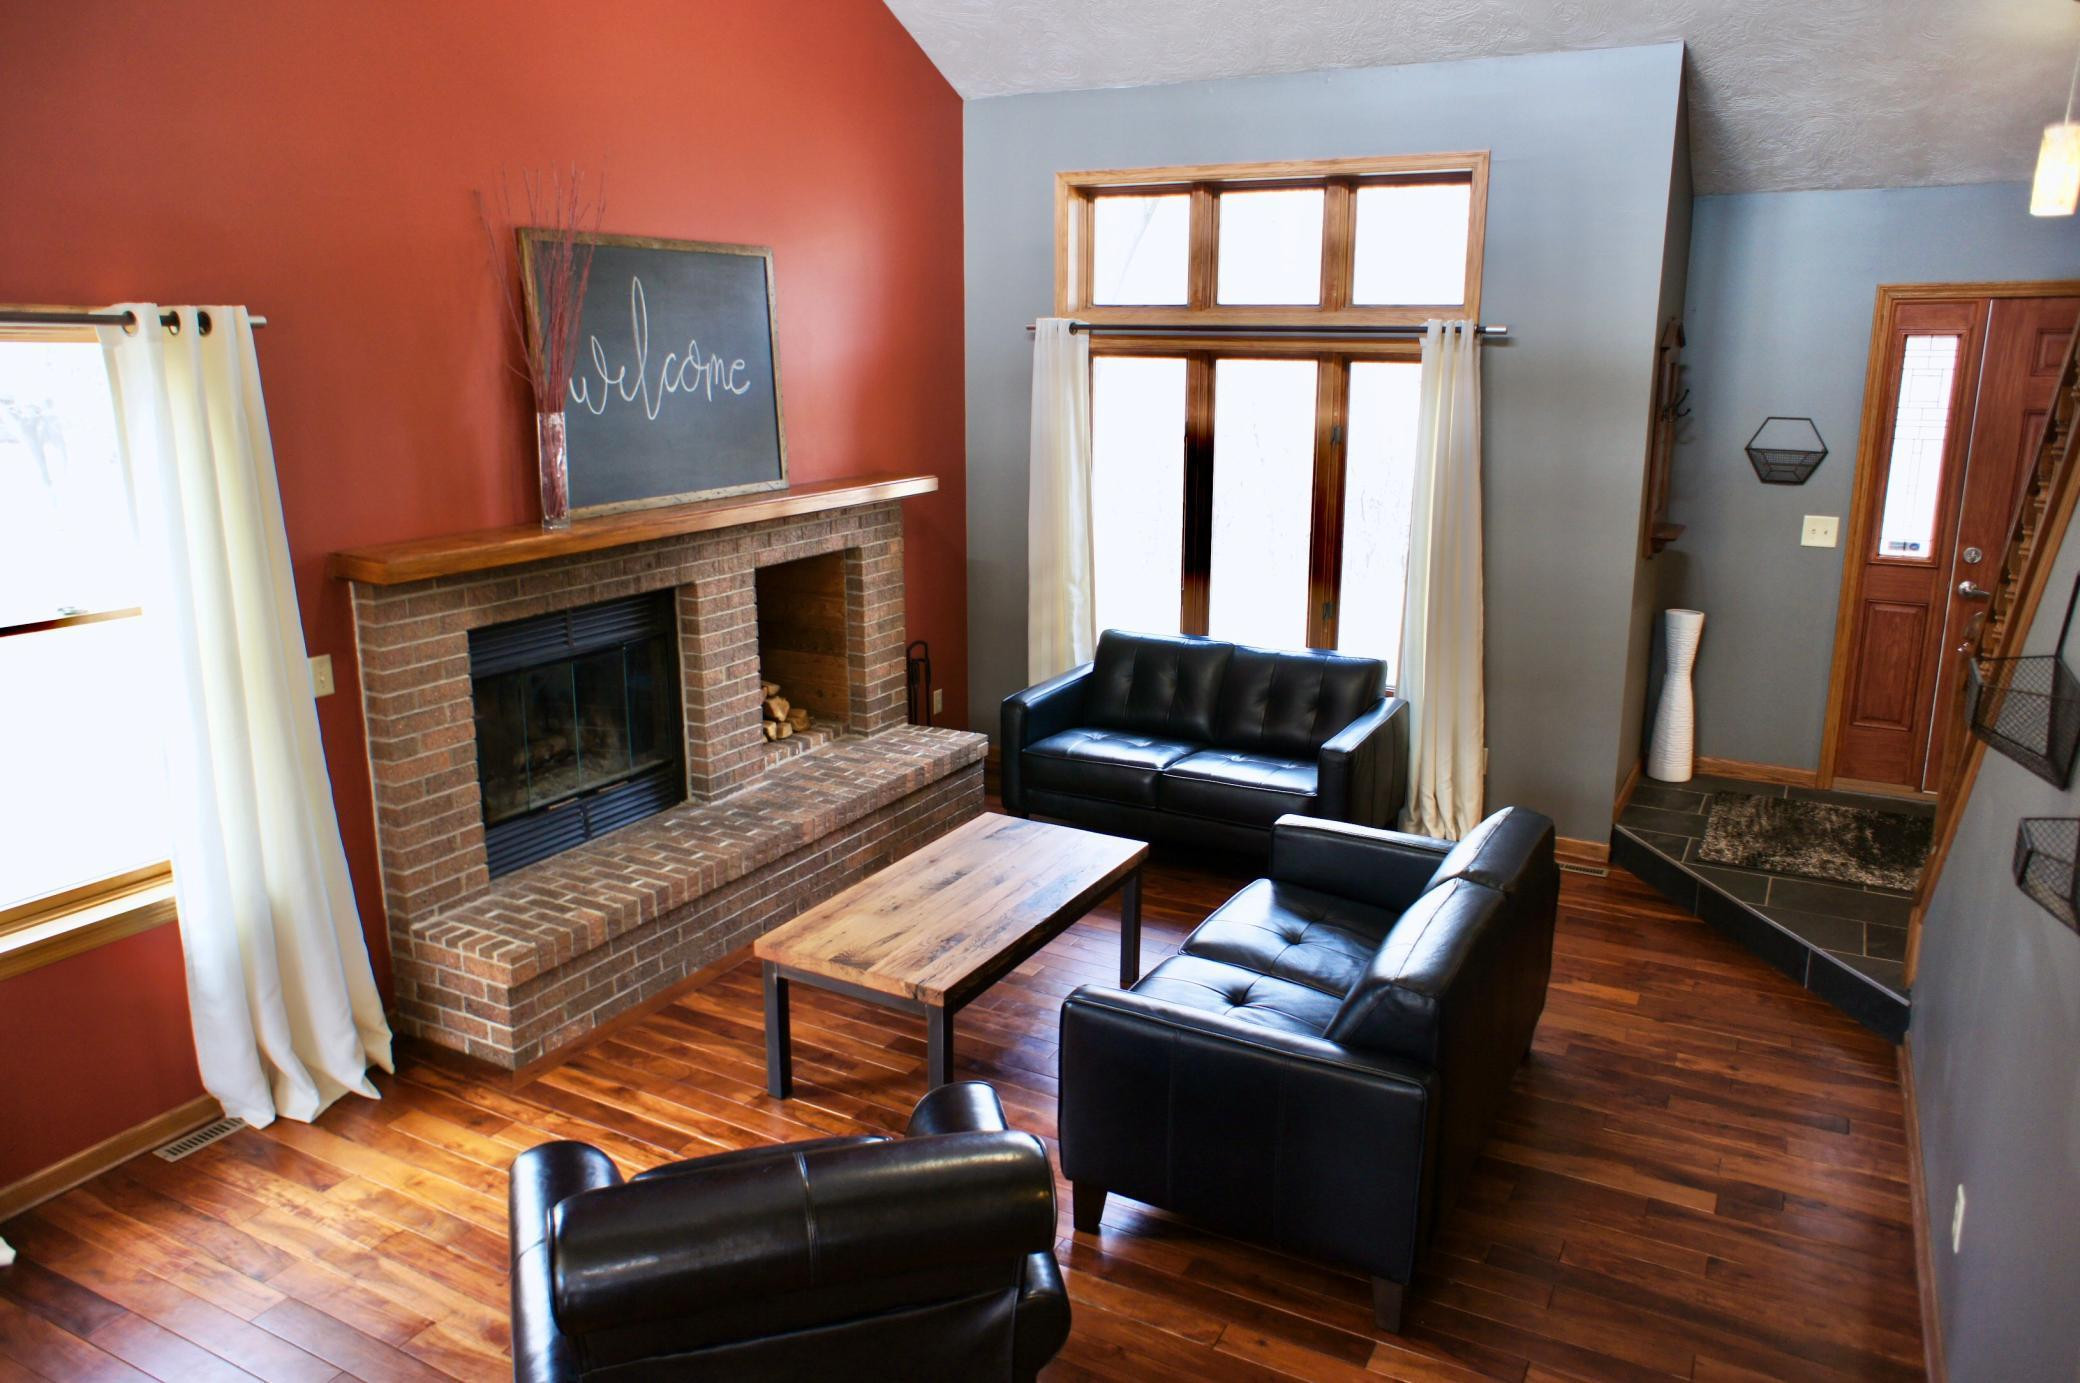 Enjoy the warmth this fireplace will provide when you are just wanting the heat and glow of an inviting fire.